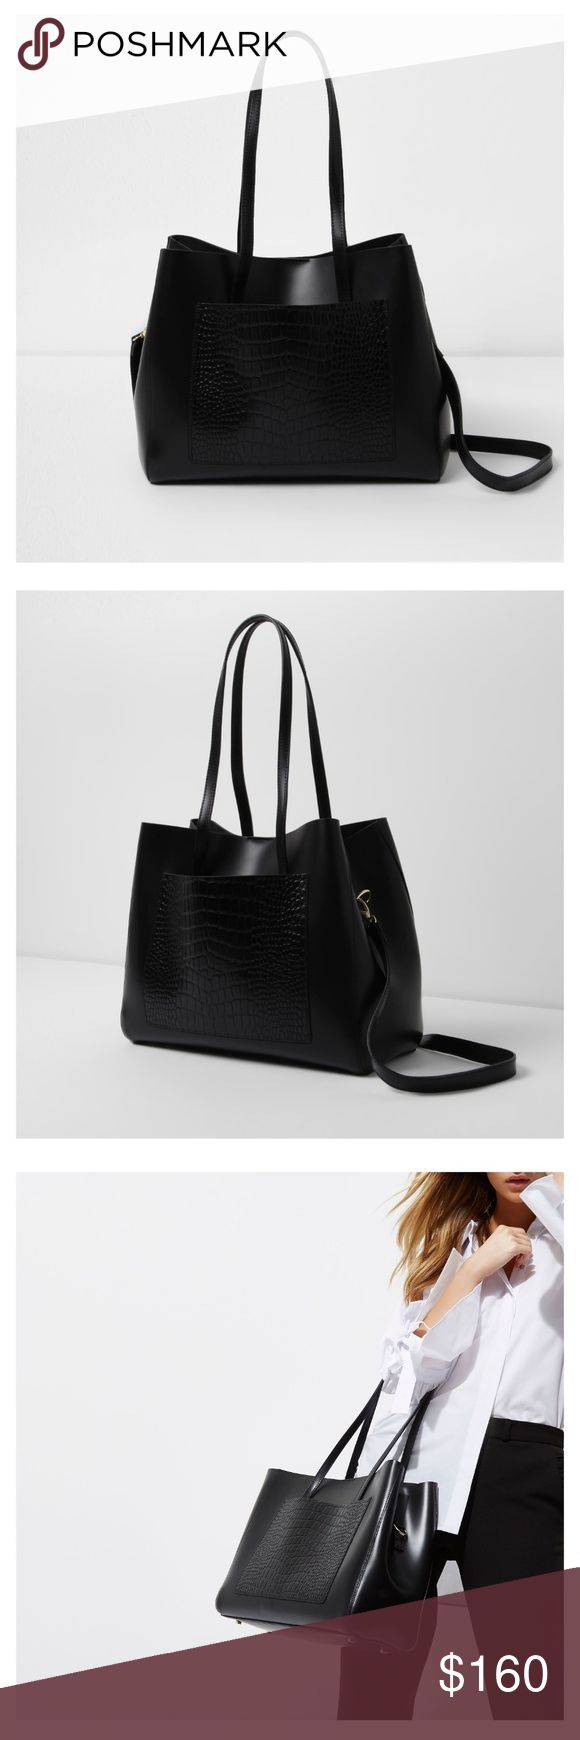 Black leather Croc embossed Tote bag Brand new in it's original packaging. Very chic and classy for the everyday working woman. The price is the exact price I paid for it. I just want majority of money back. River Island Bags Totes